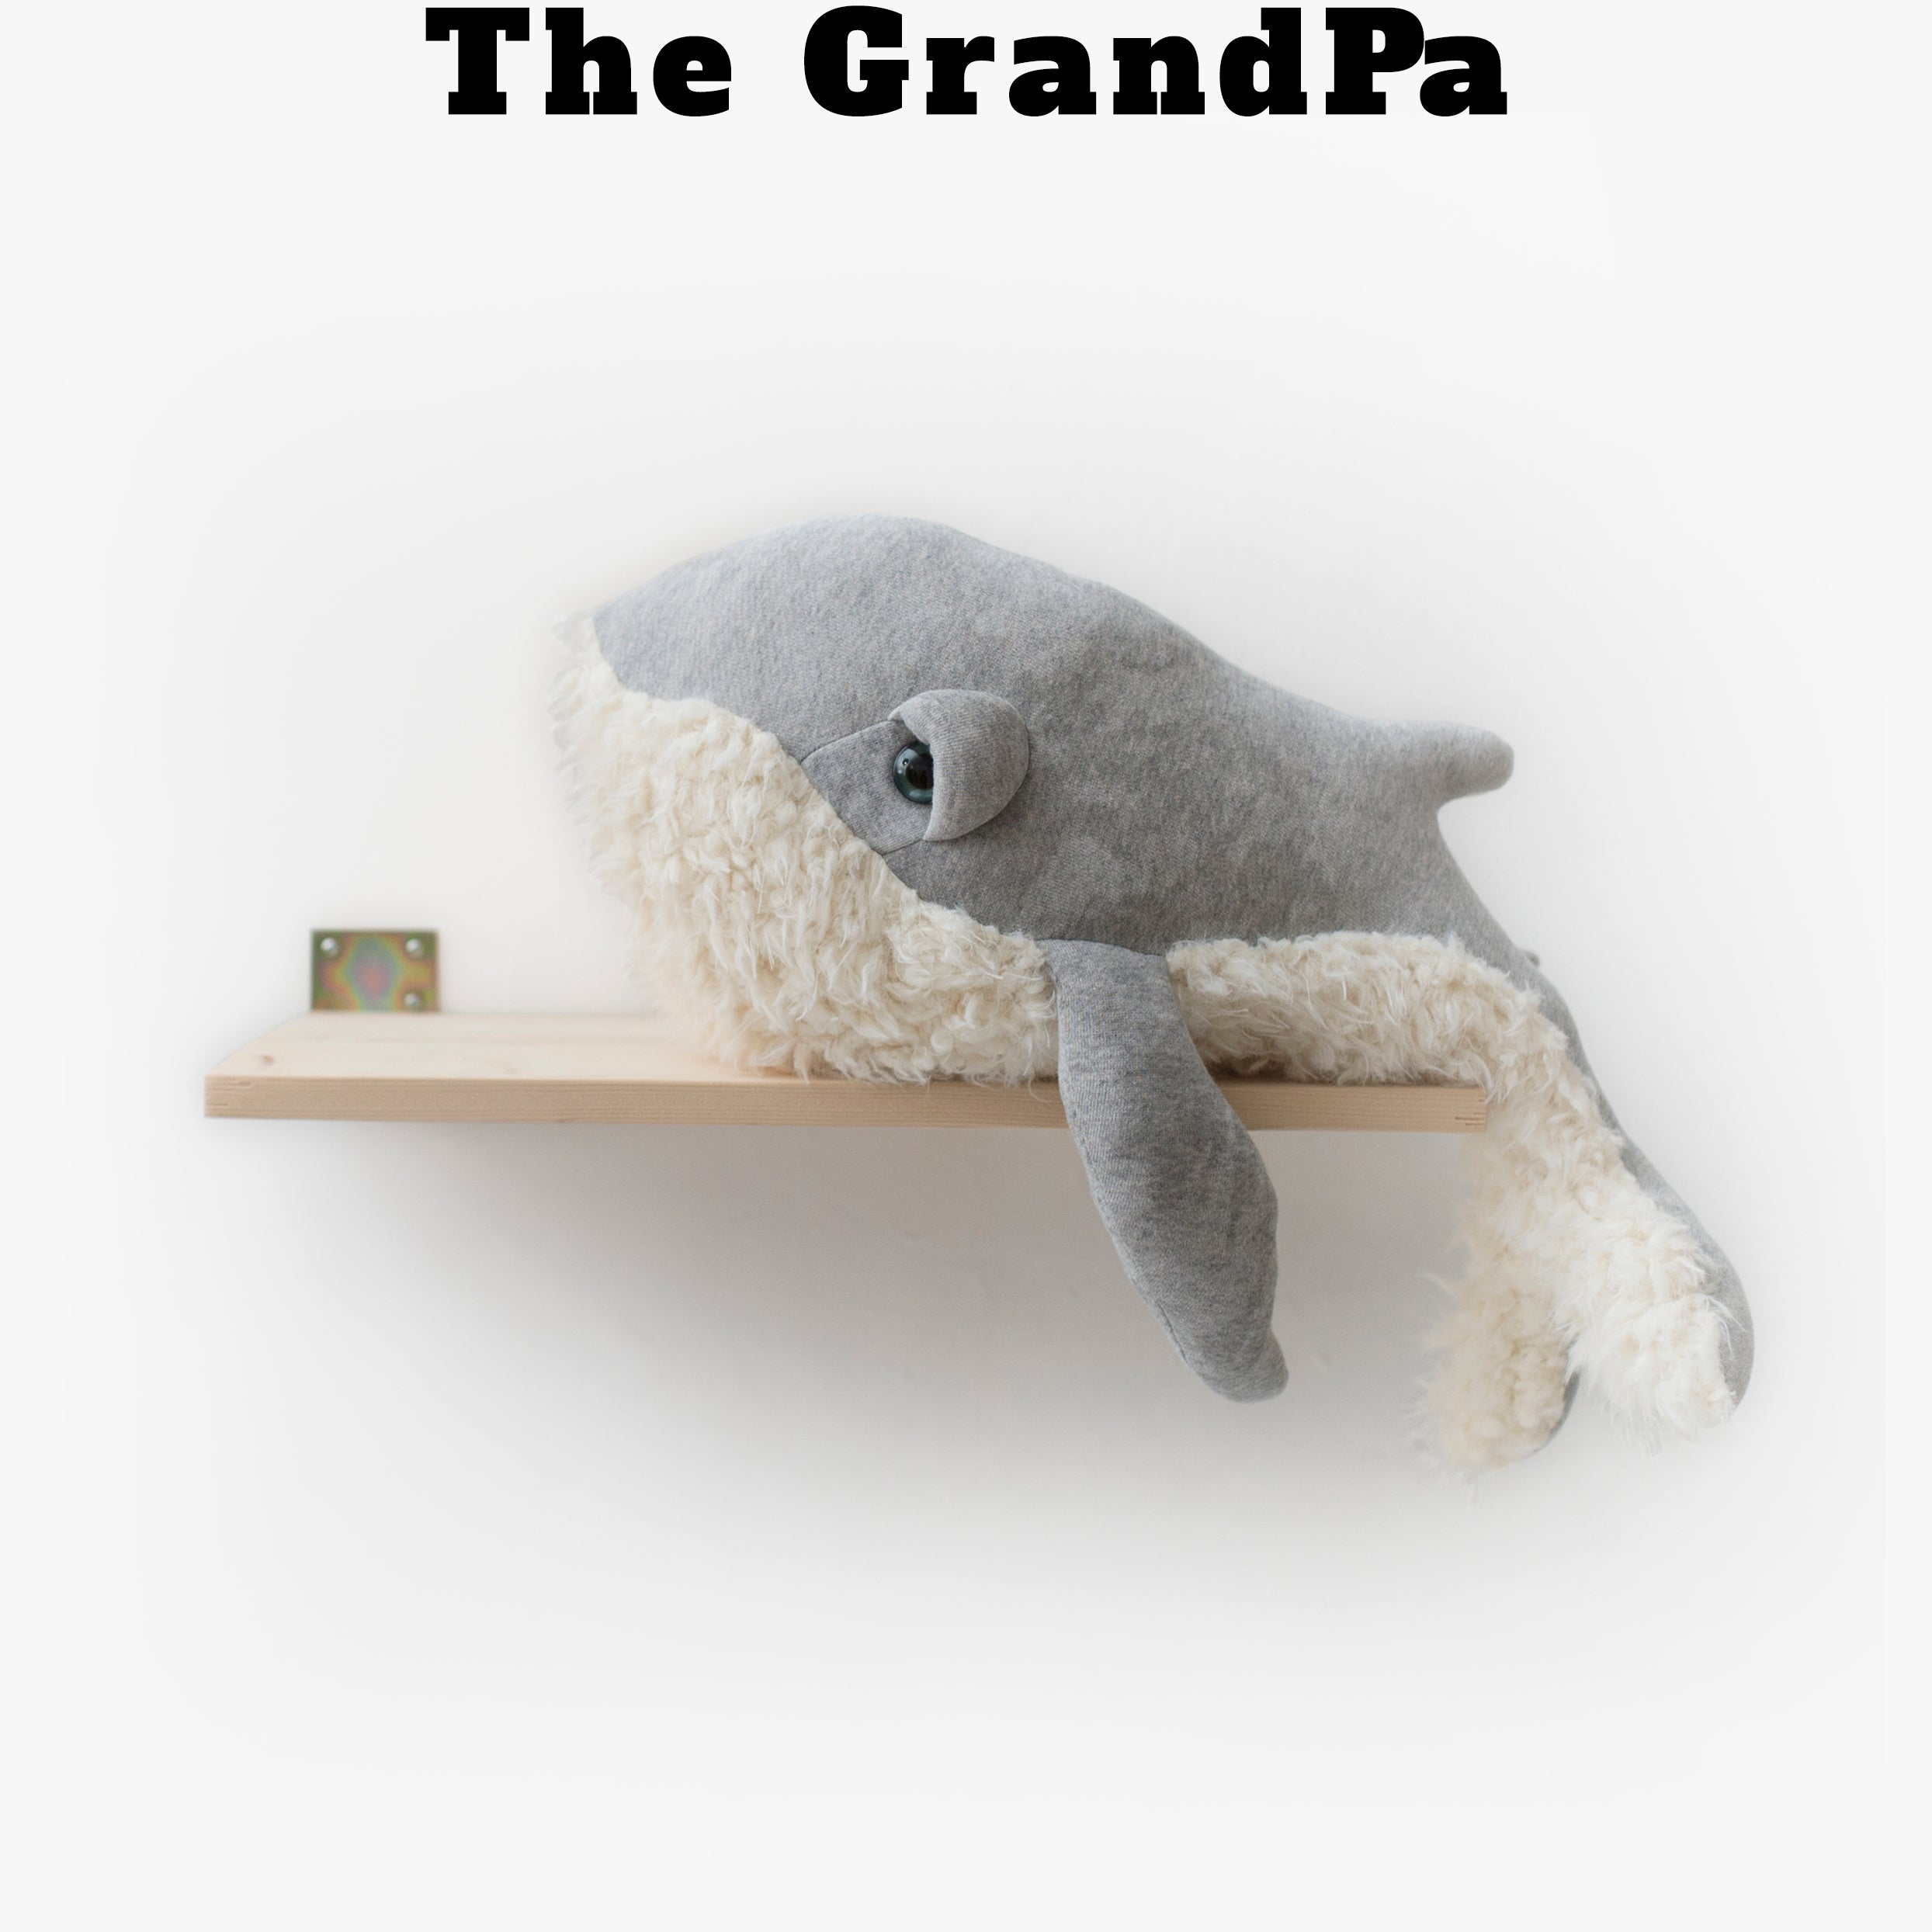 Small GrandPa Whale 1st edition